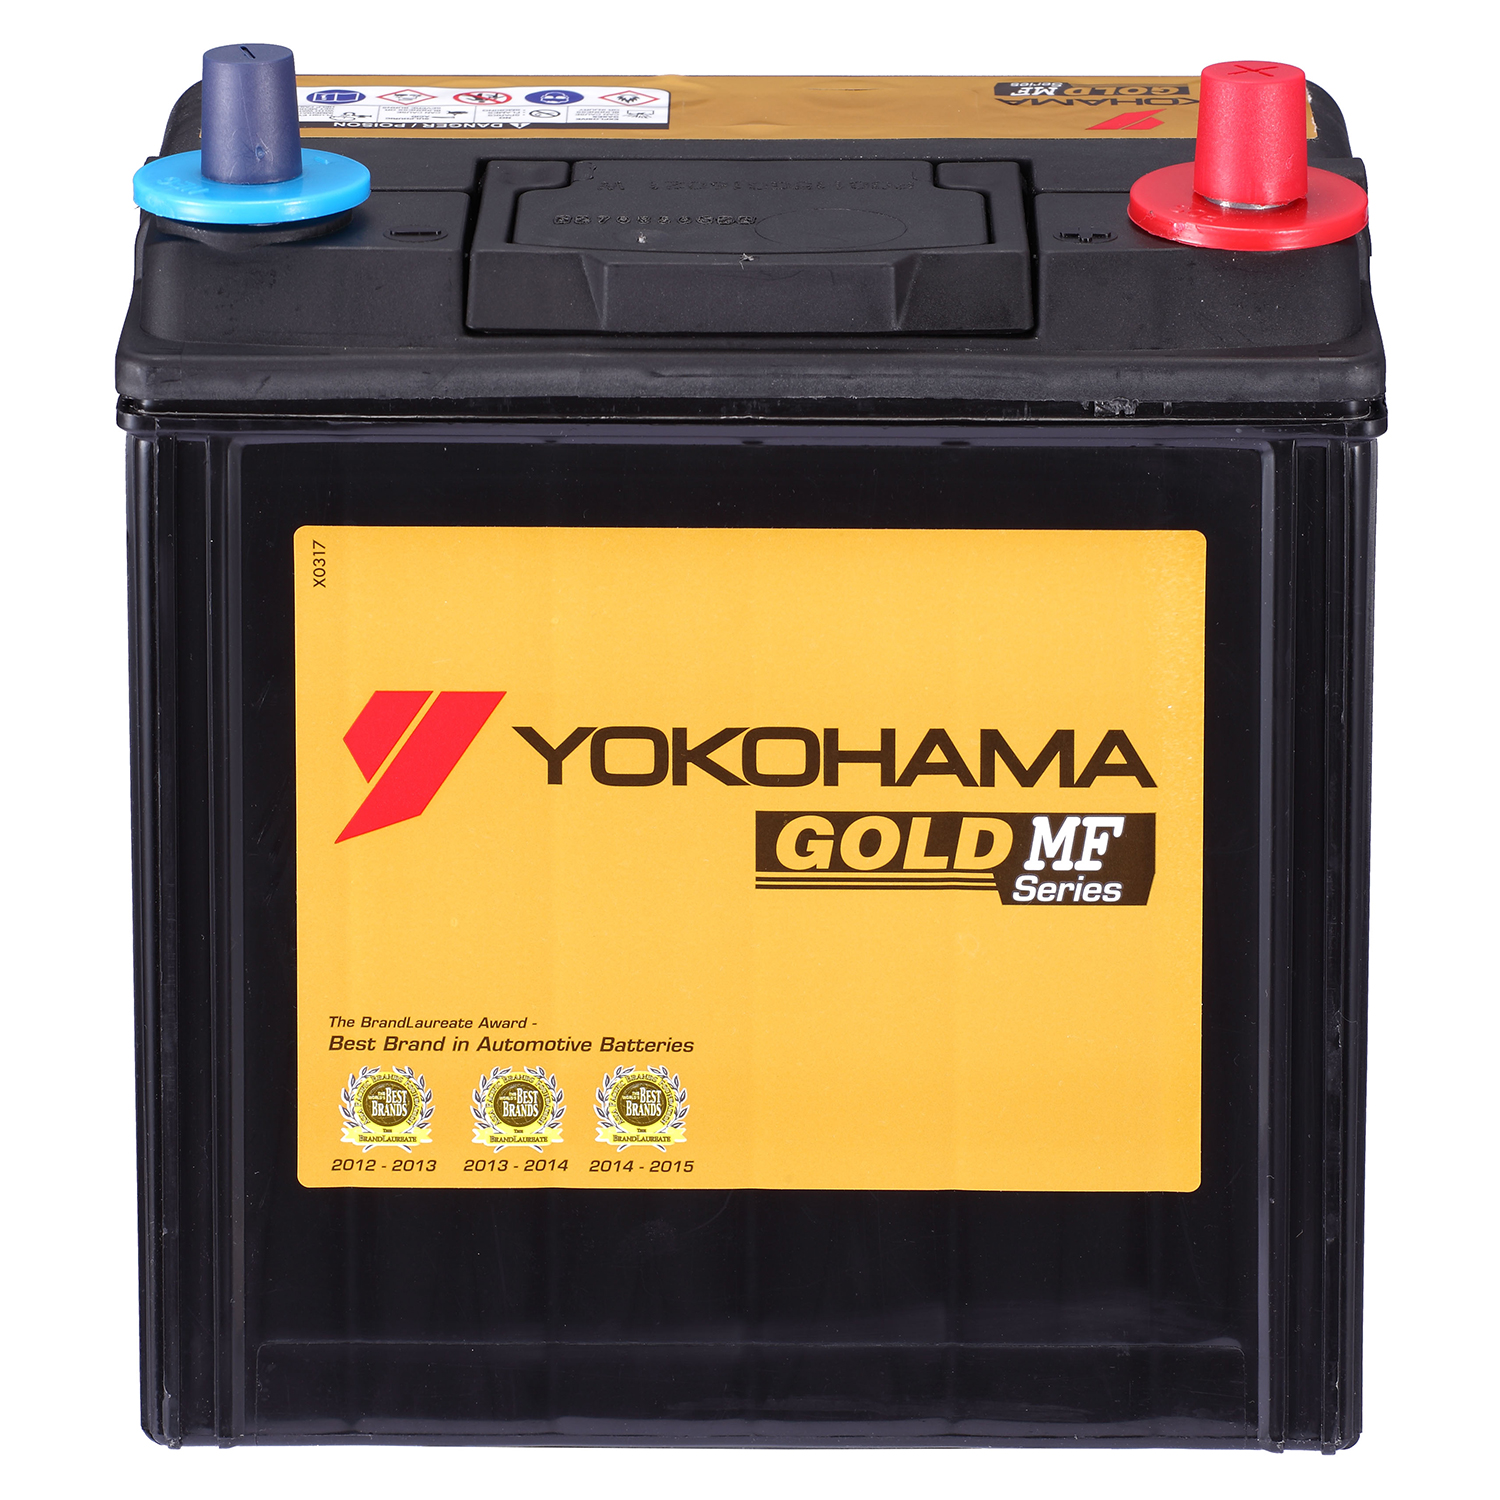 Yokohama Gold MF  Series